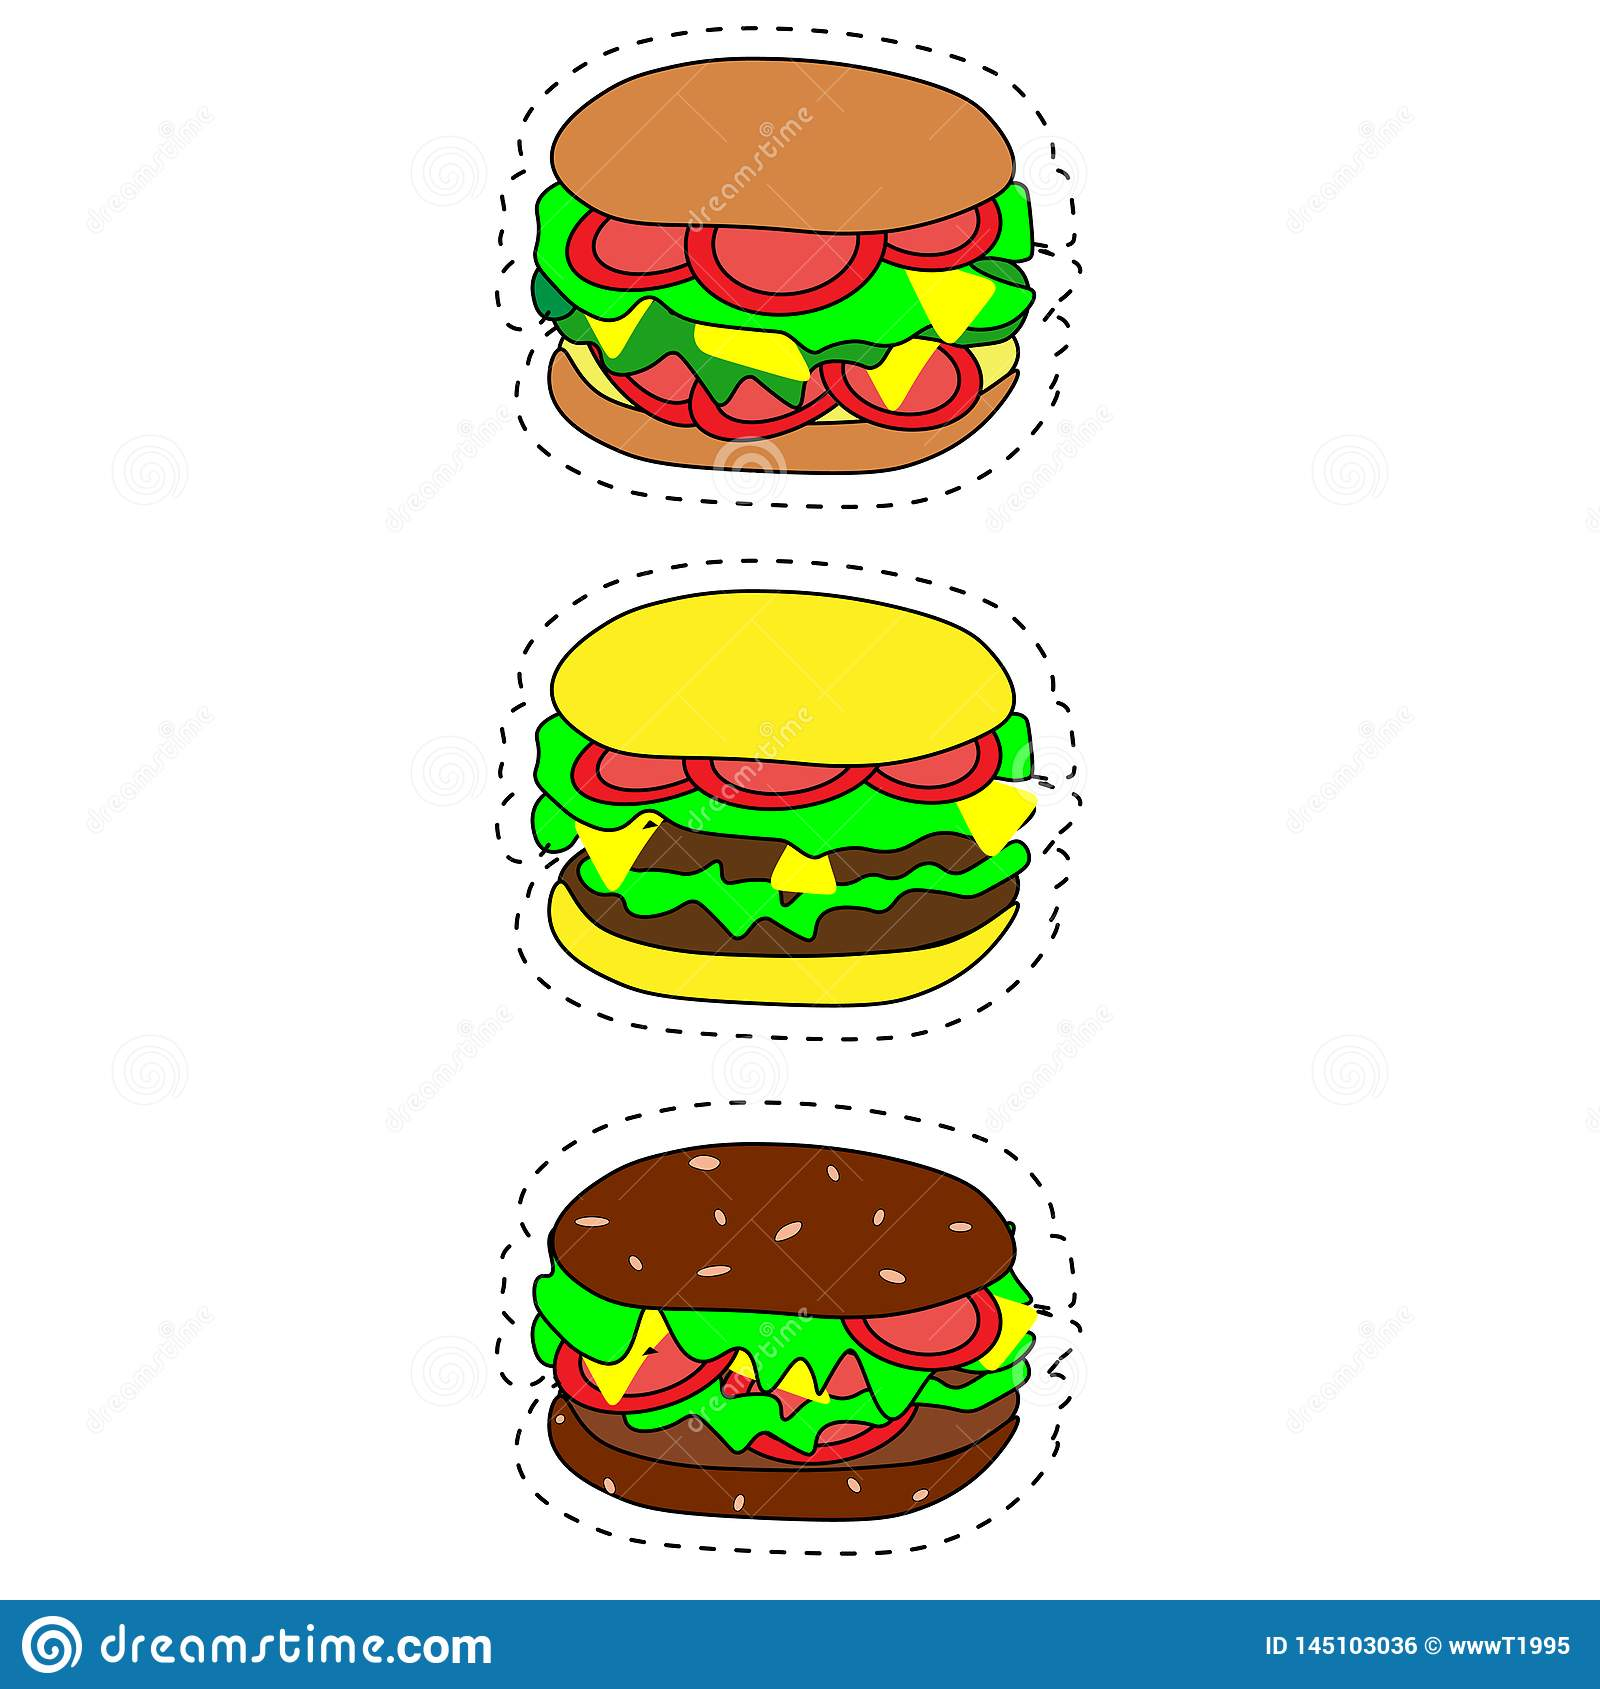 Set of vector fast food icons. Hamburger, cheeseburger, double burger, burger with lettuce, onion, tomato, cucumber and ketchup